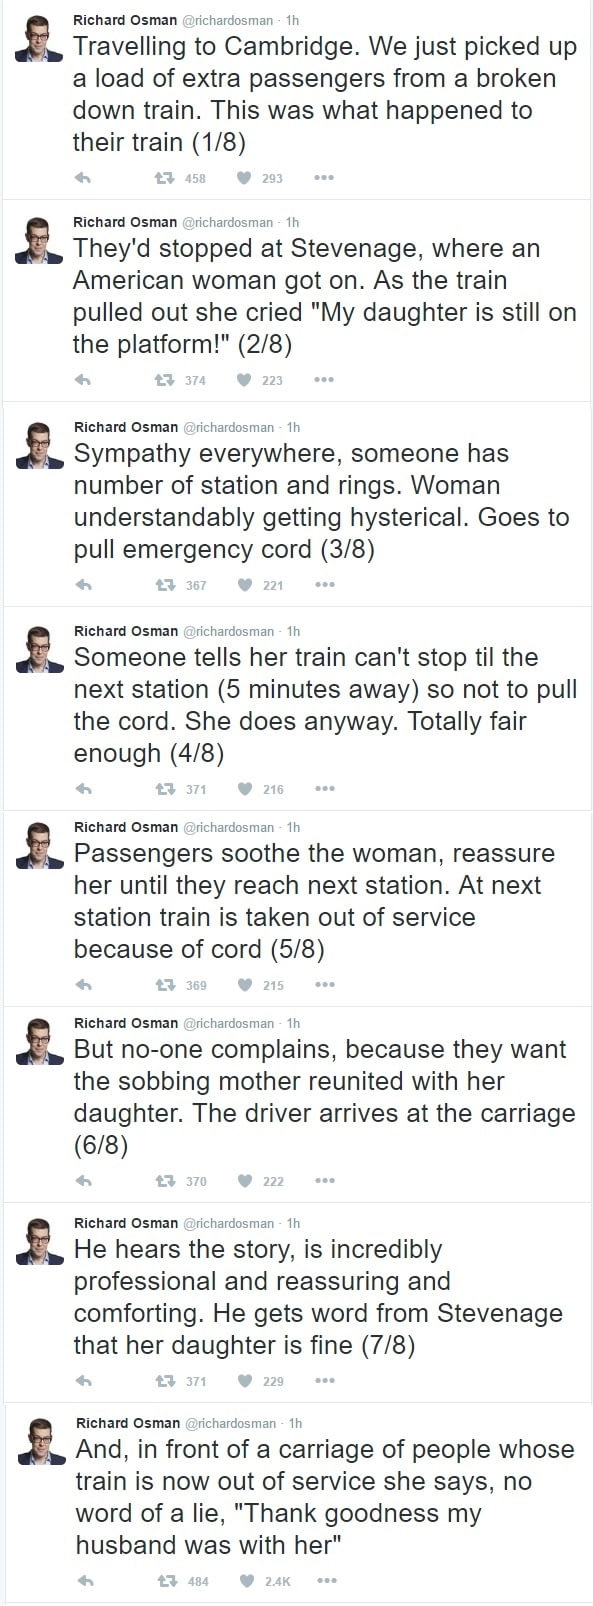 American woman accidentally leaves her daughter on a British train platform